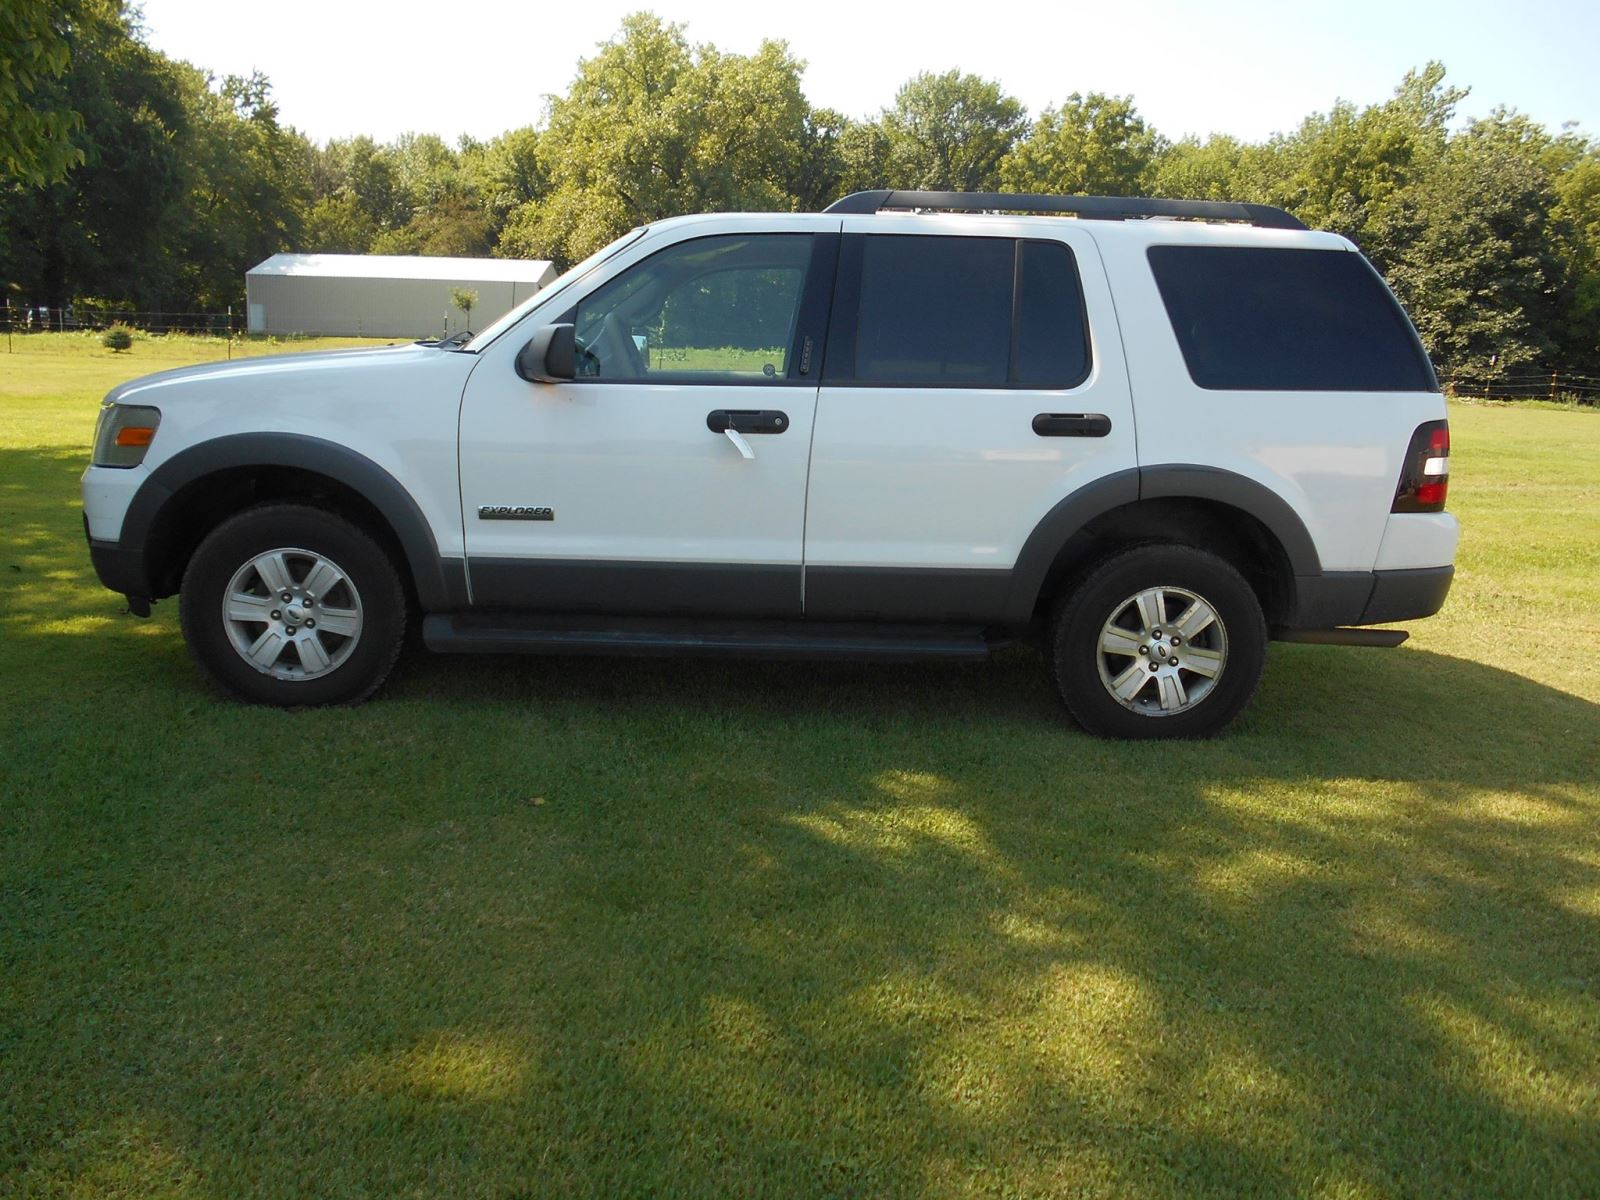 2006 Ford Explorer Suv Pictures Information And Specs